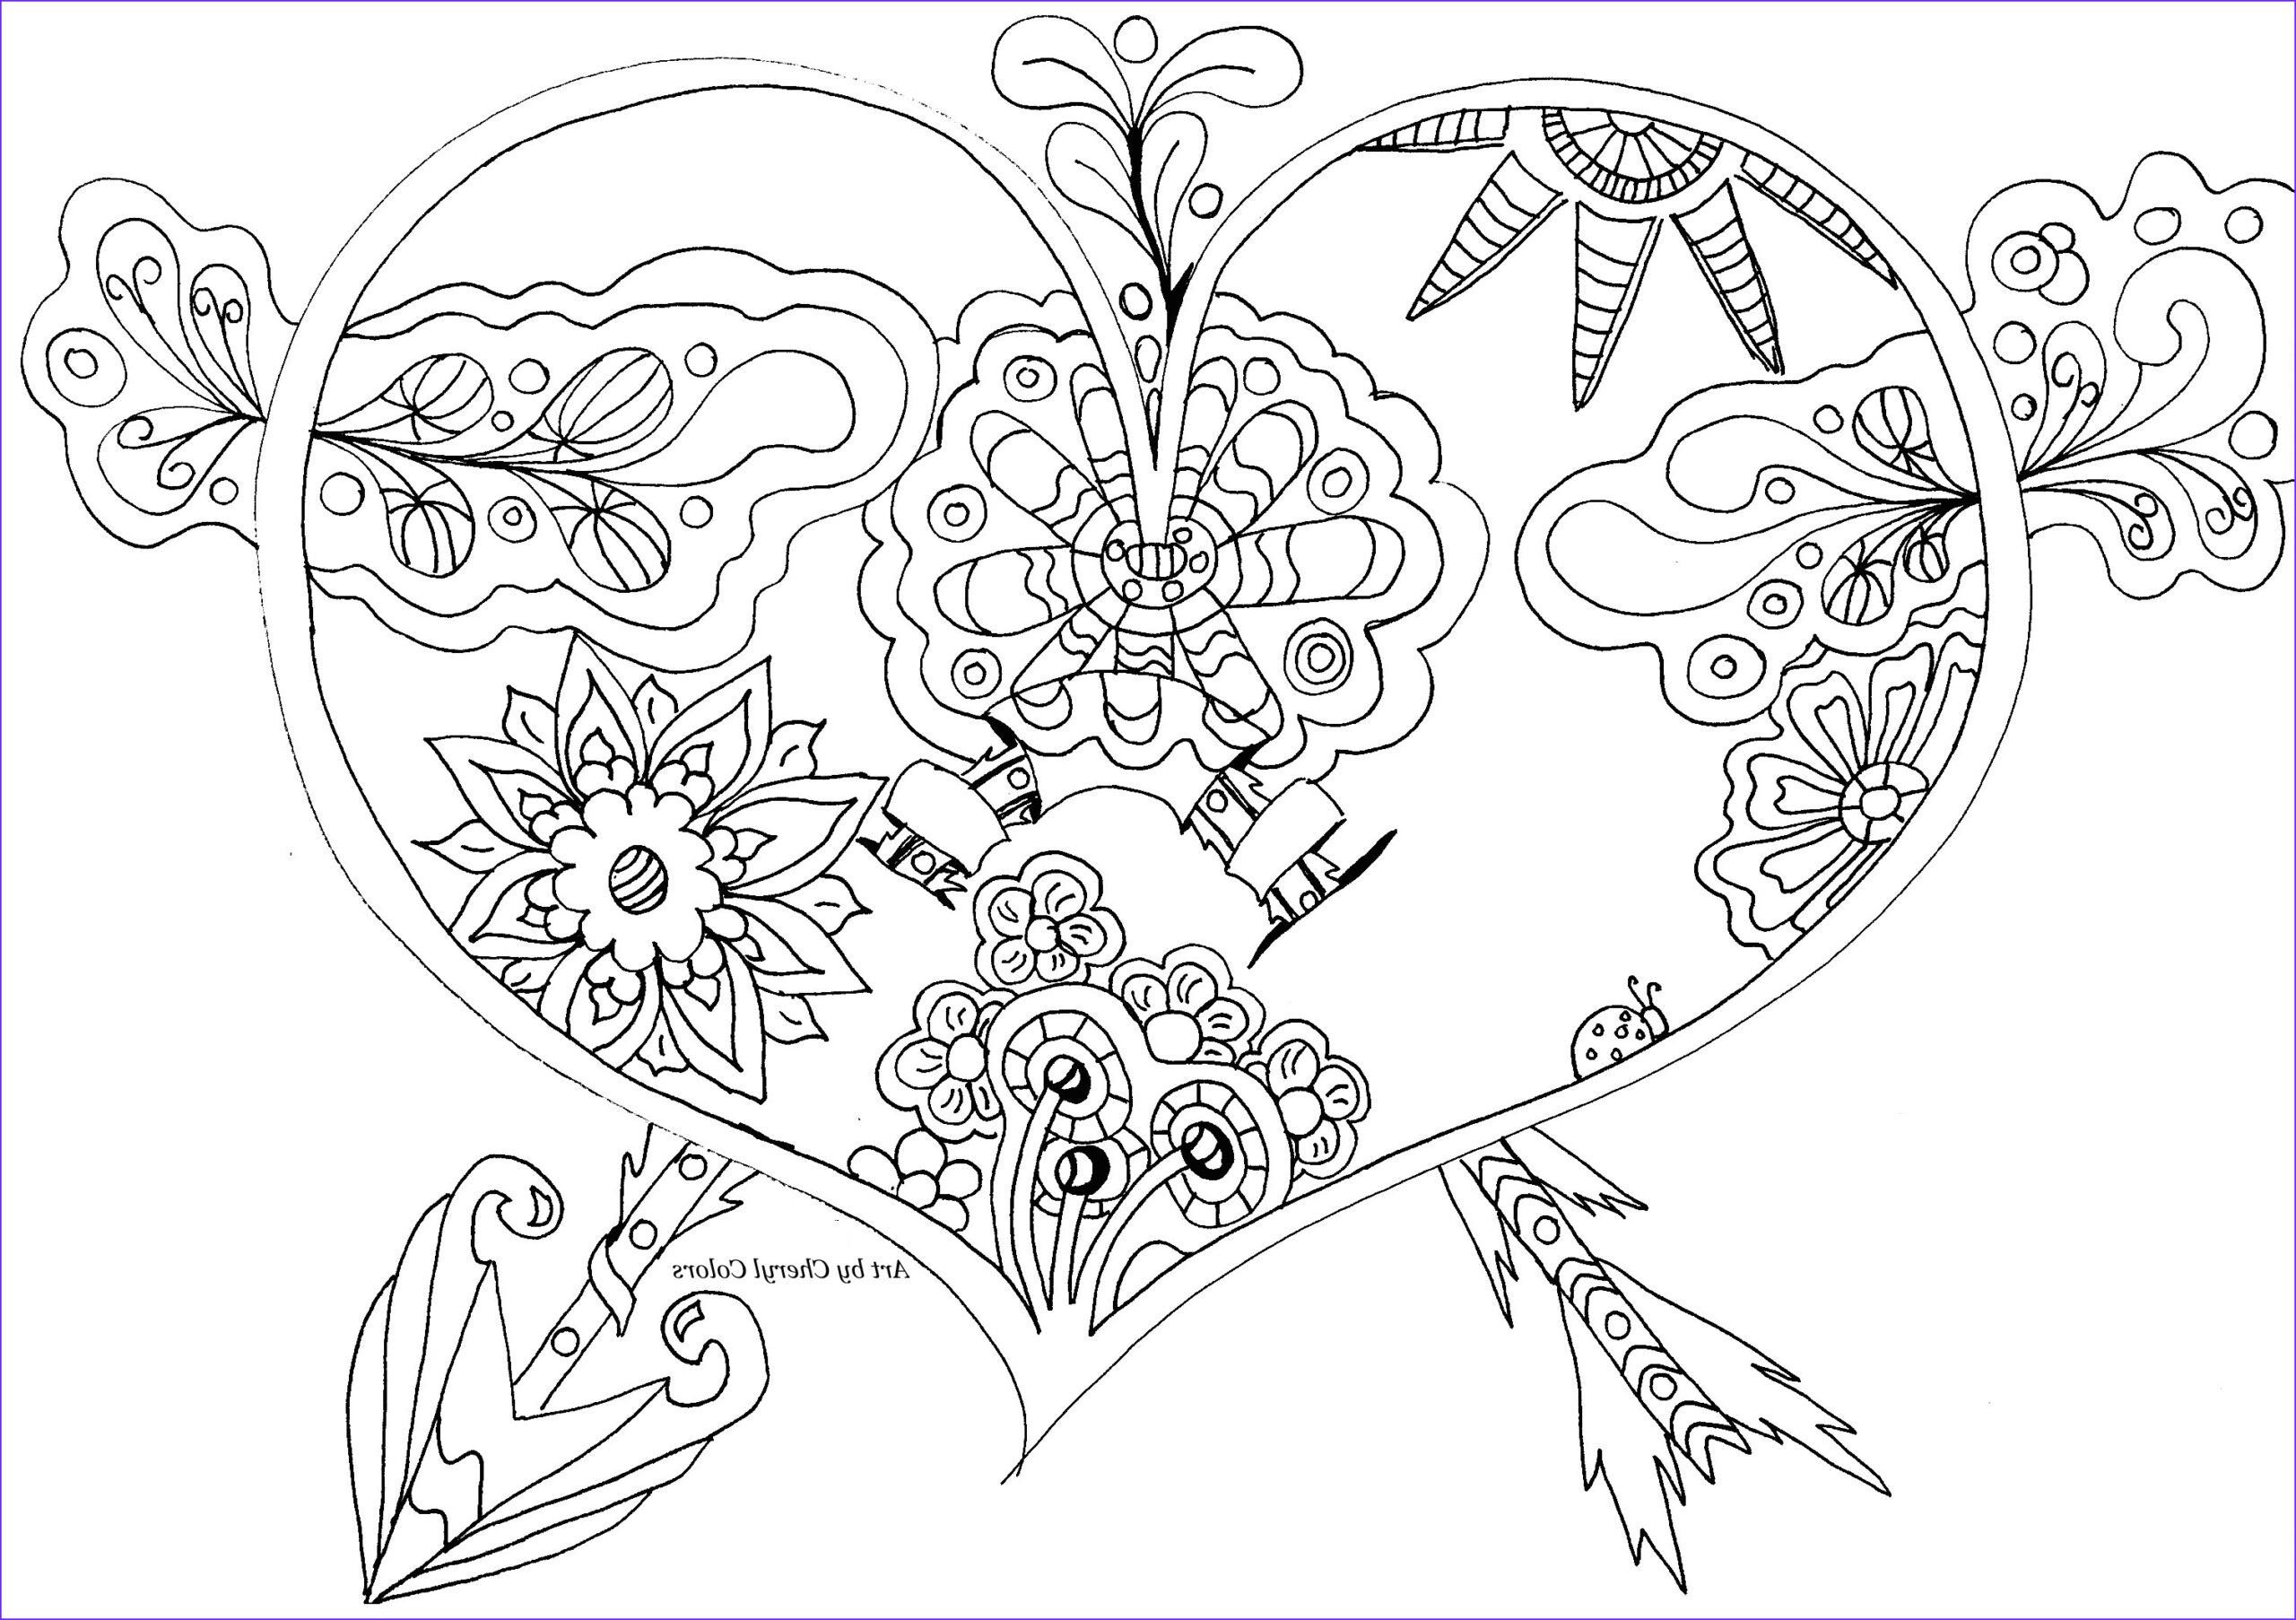 Coloring Images for Adults Elegant Photos Free Coloring Pages – Adult Coloring Worldwide